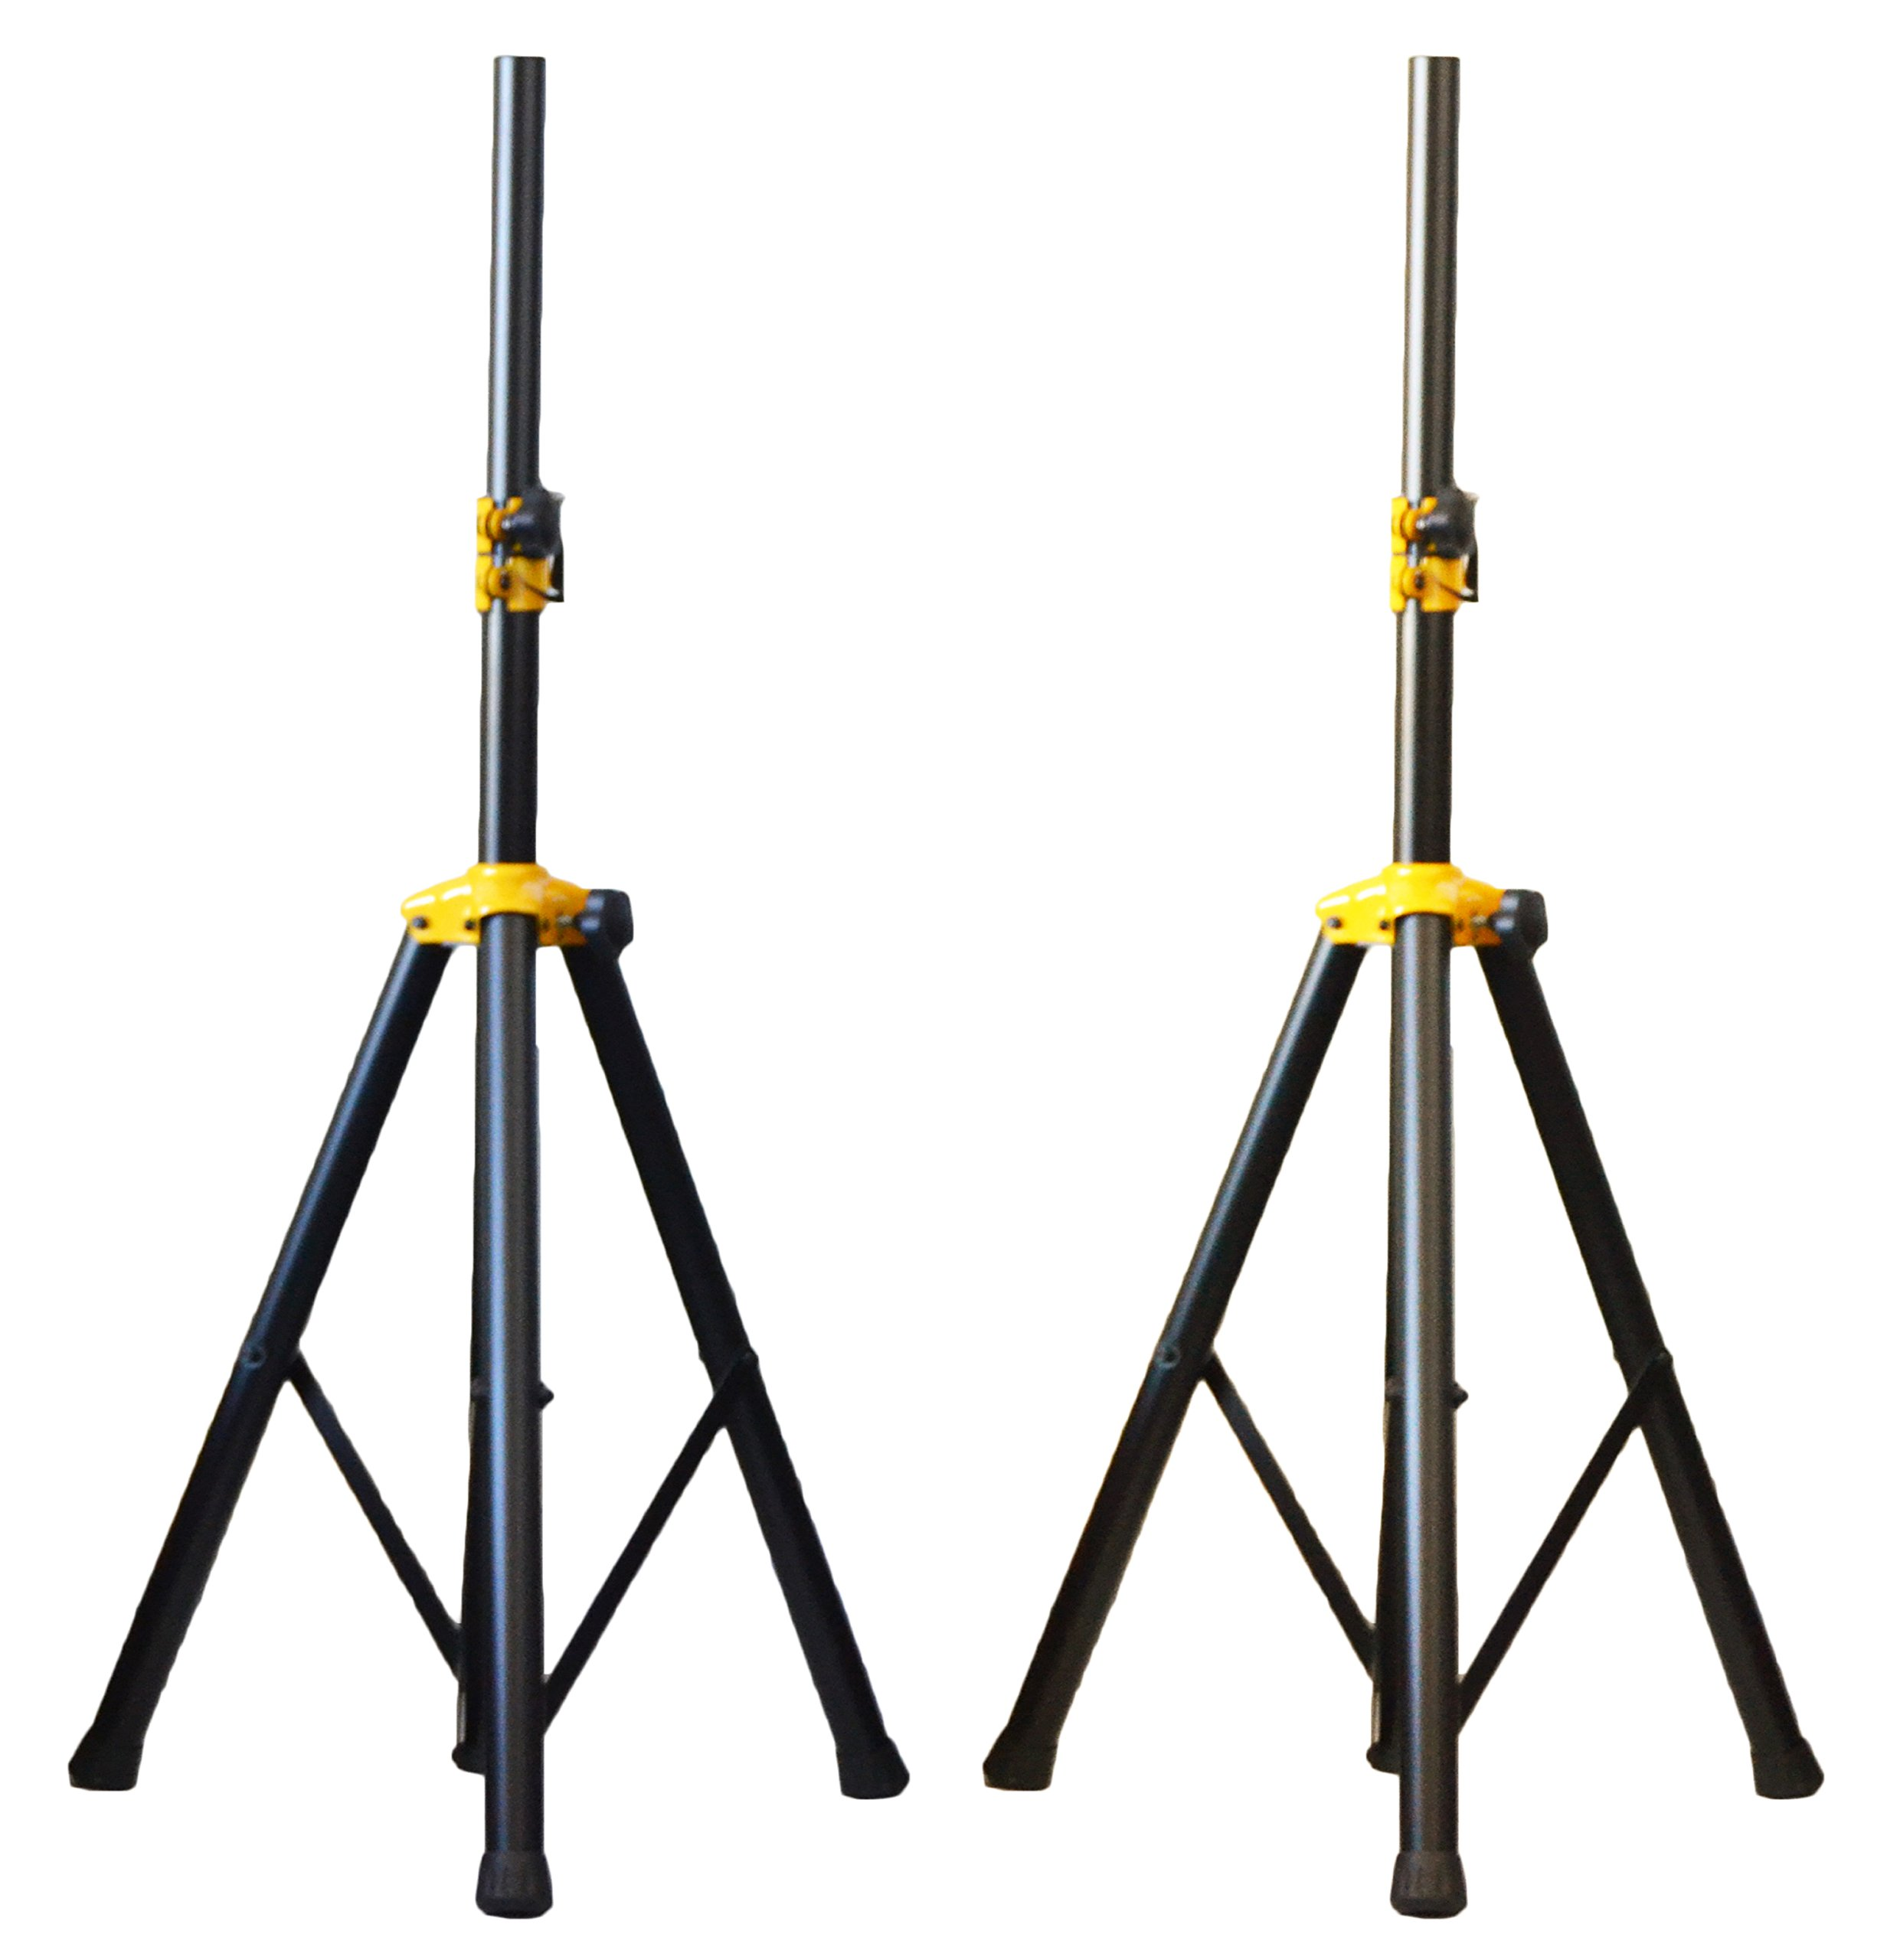 2X Ignite Deluxe Series Heavy Duty Tripod DJ PA Speaker Stands Adjustable - Pair by Ignite Pro